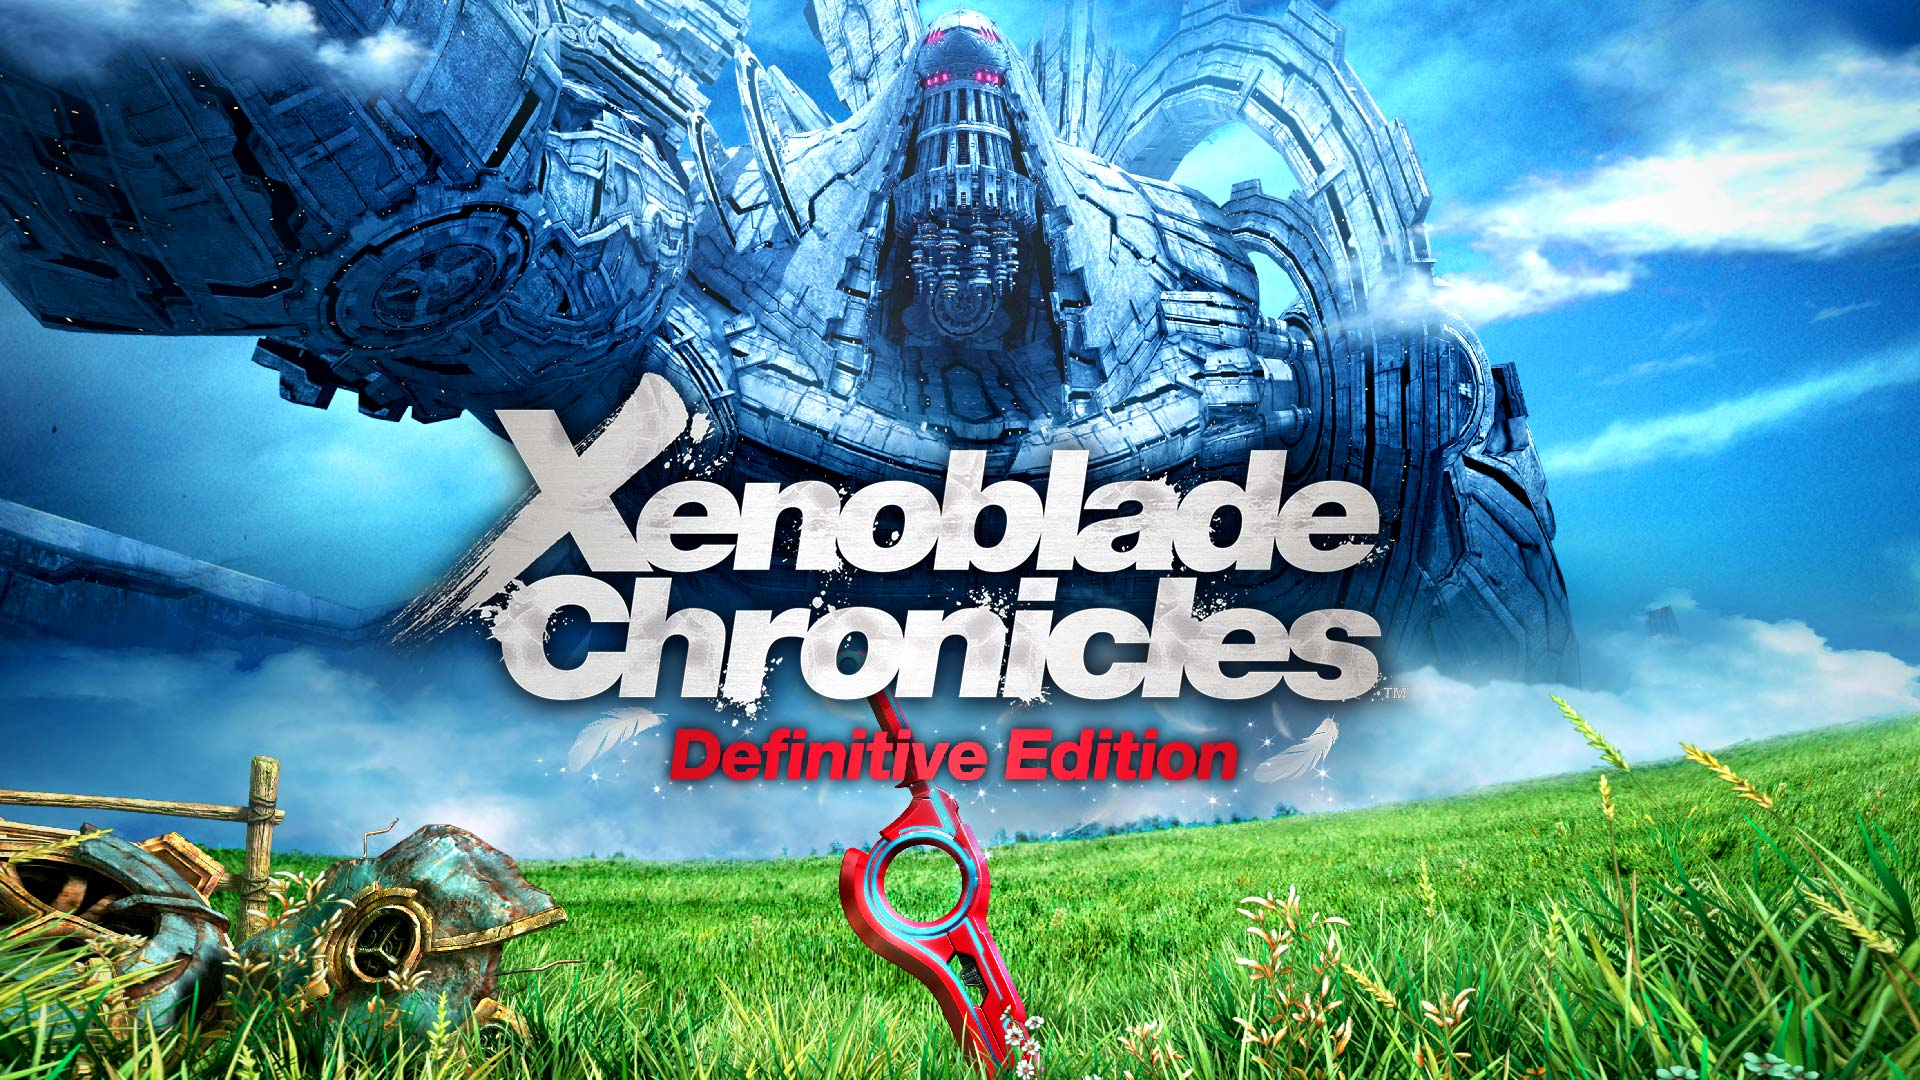 xenoblade chronicles, change clothes, outfits